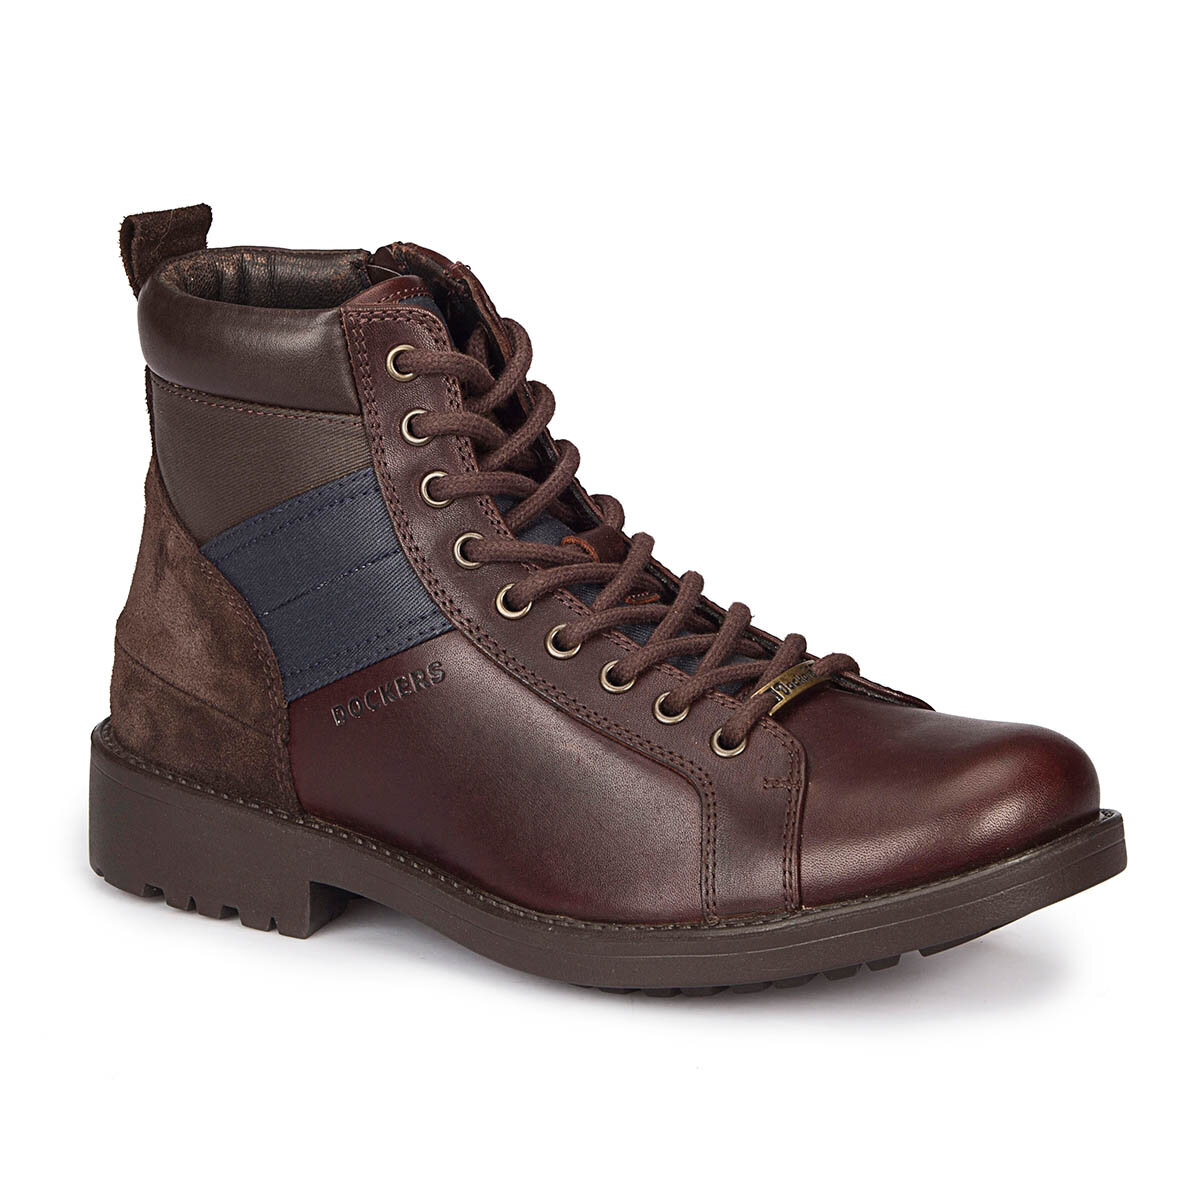 FLO 219044 Brown Men Boots By Dockers The Gerle